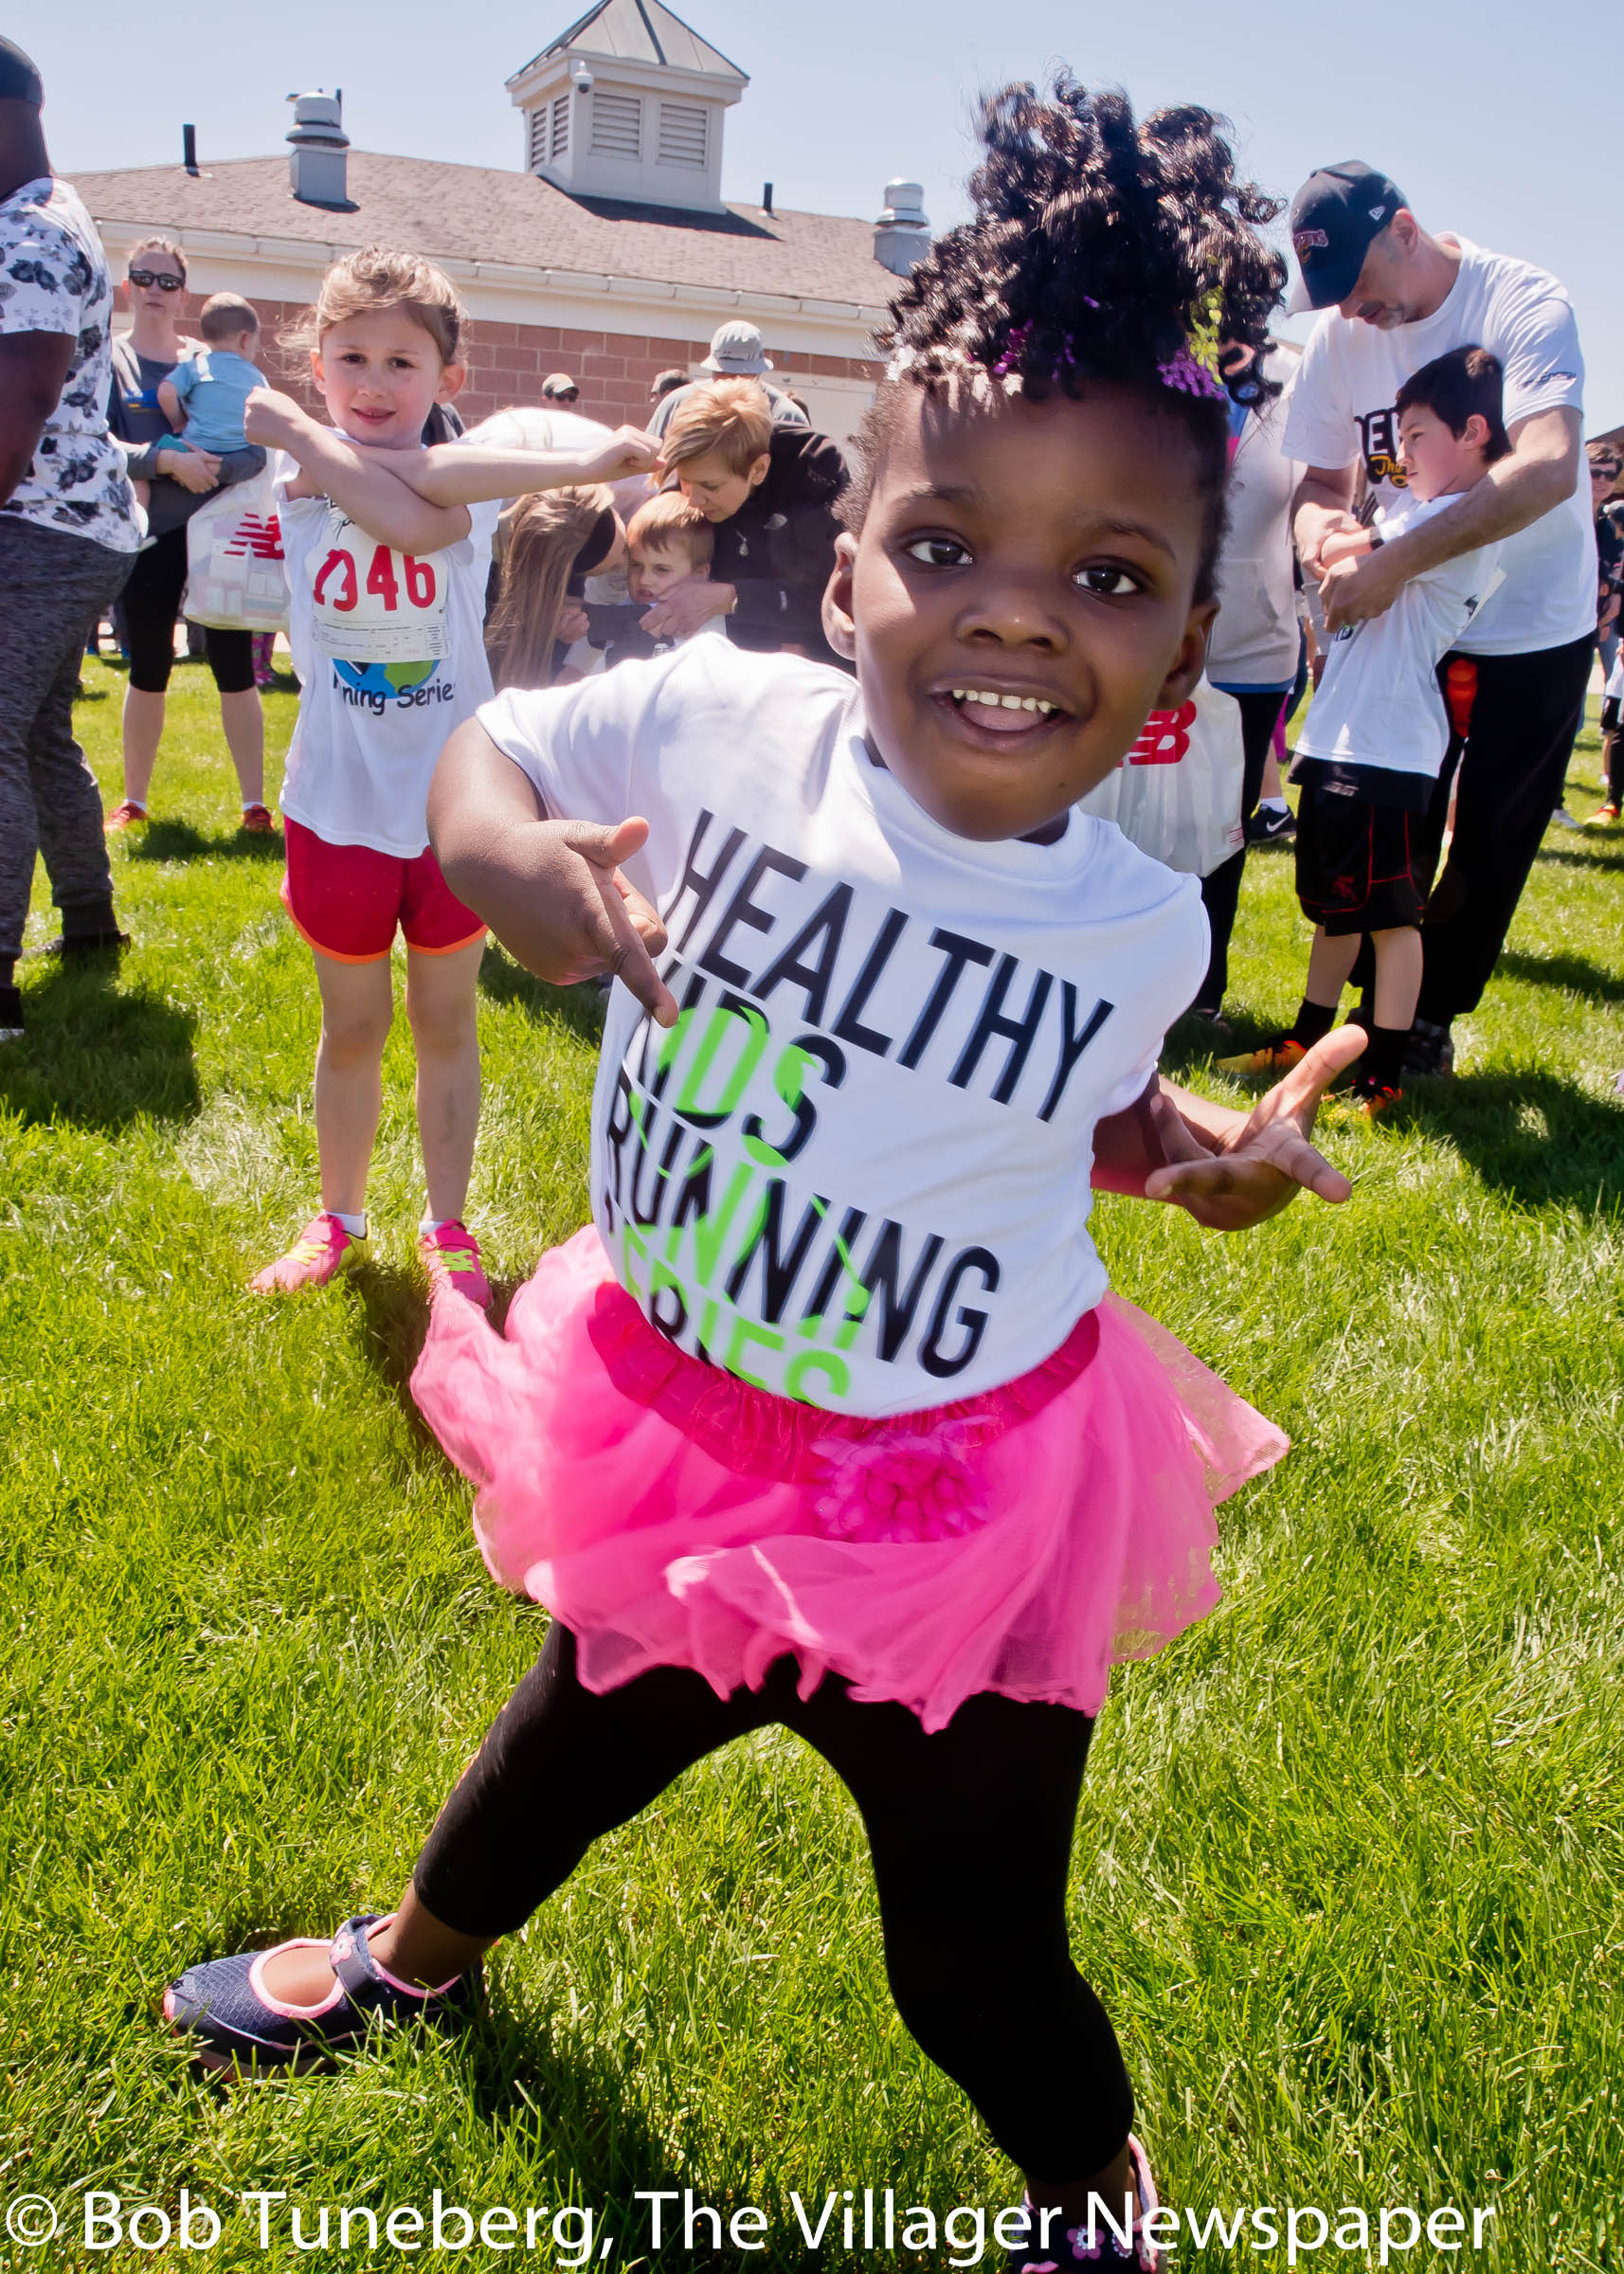 Go To Healthykidsrunningseriesorg Race Locations Cleveland Oh For More Information And Register